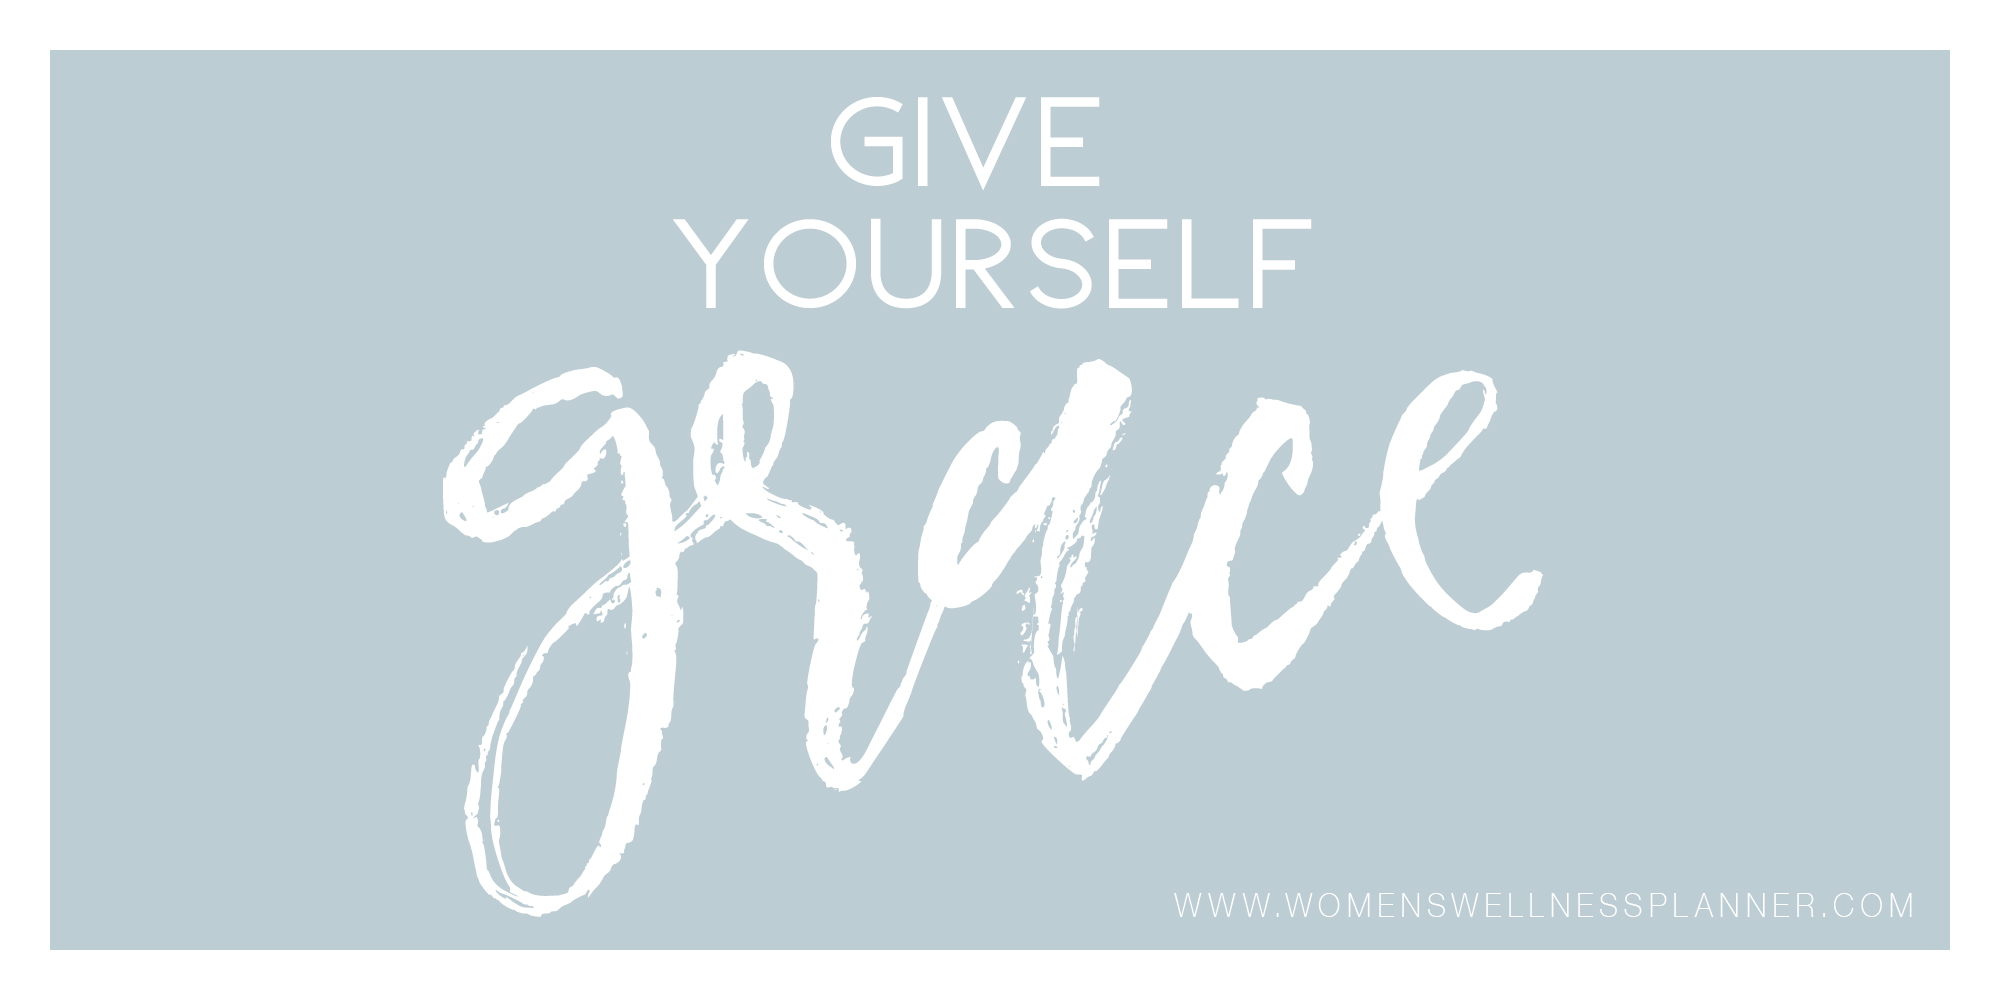 Give Yourself Grace  |  Women's Wellness Planner Blog